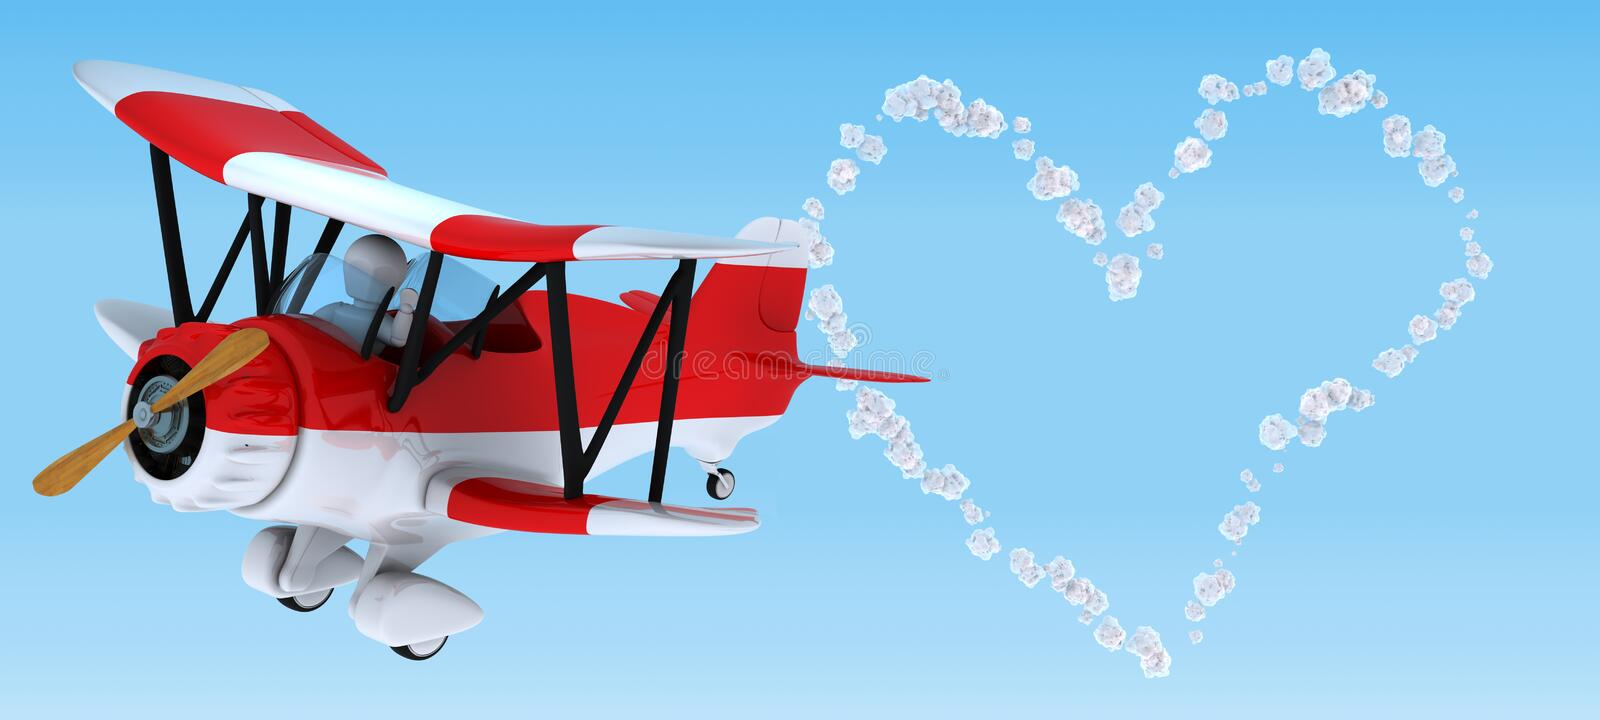 Download Man Sky Writing In A Biplane Stock Illustration - Image: 23295206